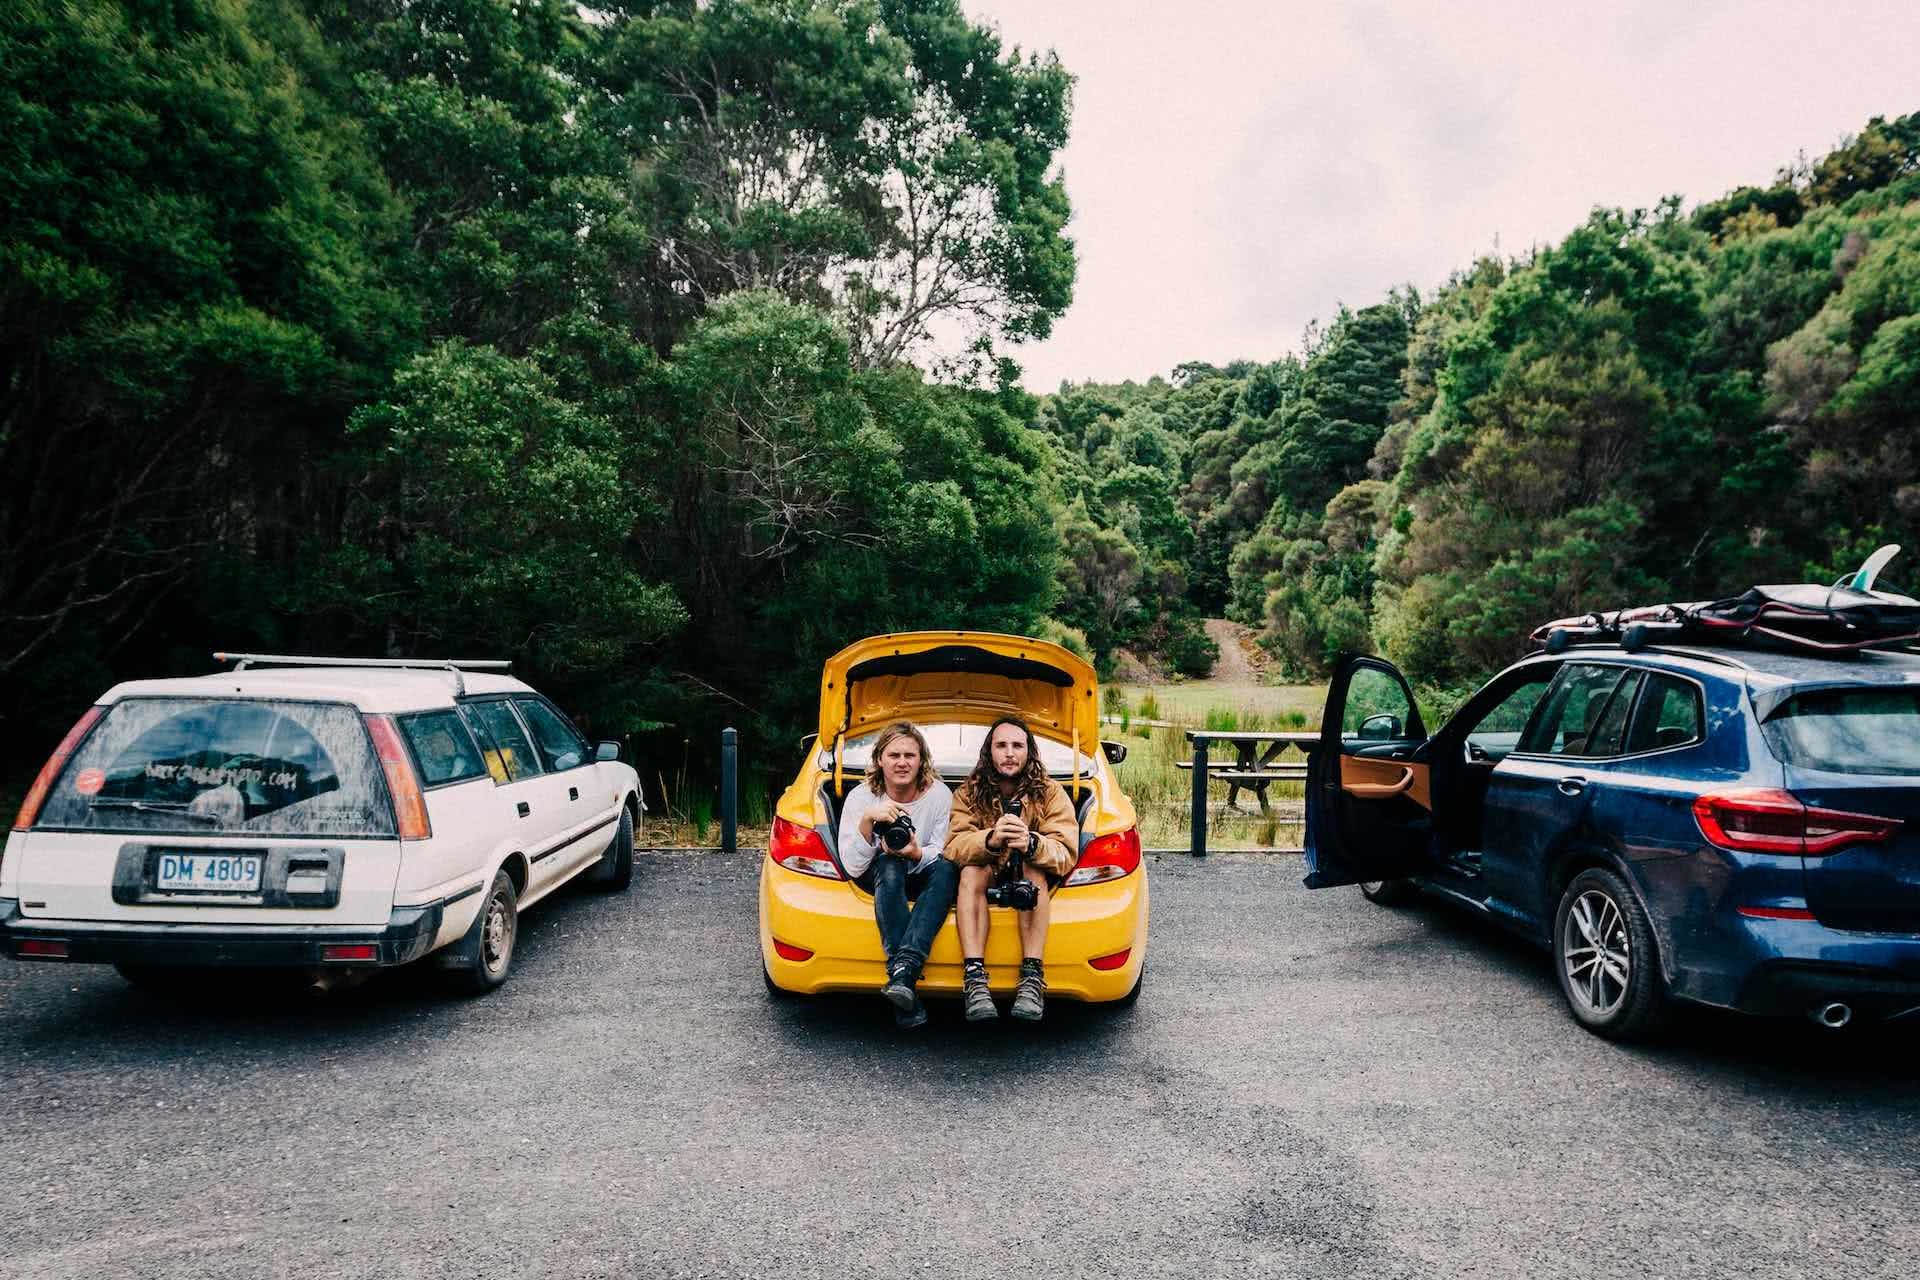 Stay Home Is the Order, but what if You're a Nomad?, photo by Henry Brydon, Tasmania, car camping, nomads